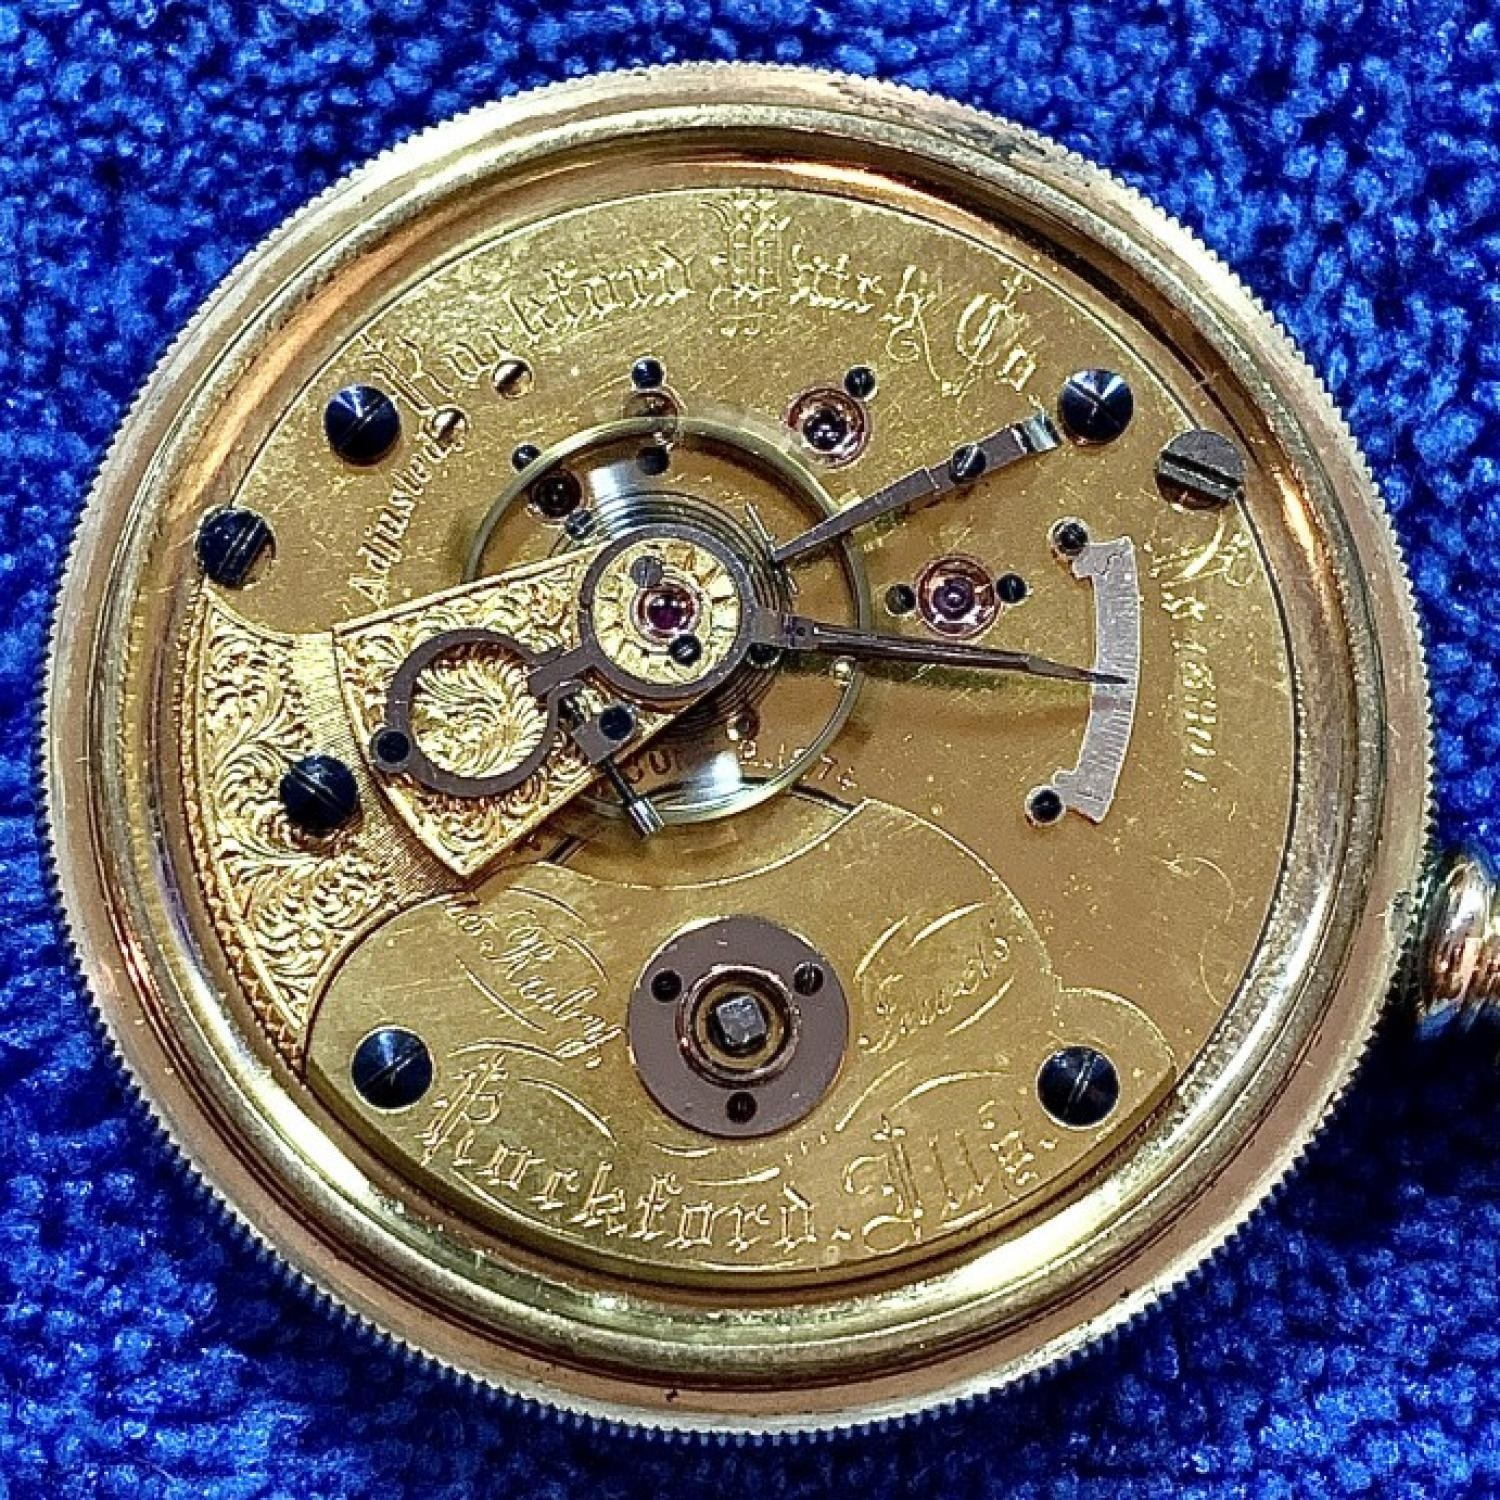 Image of Rockford 15 Ruby Jewels #13801 Movement